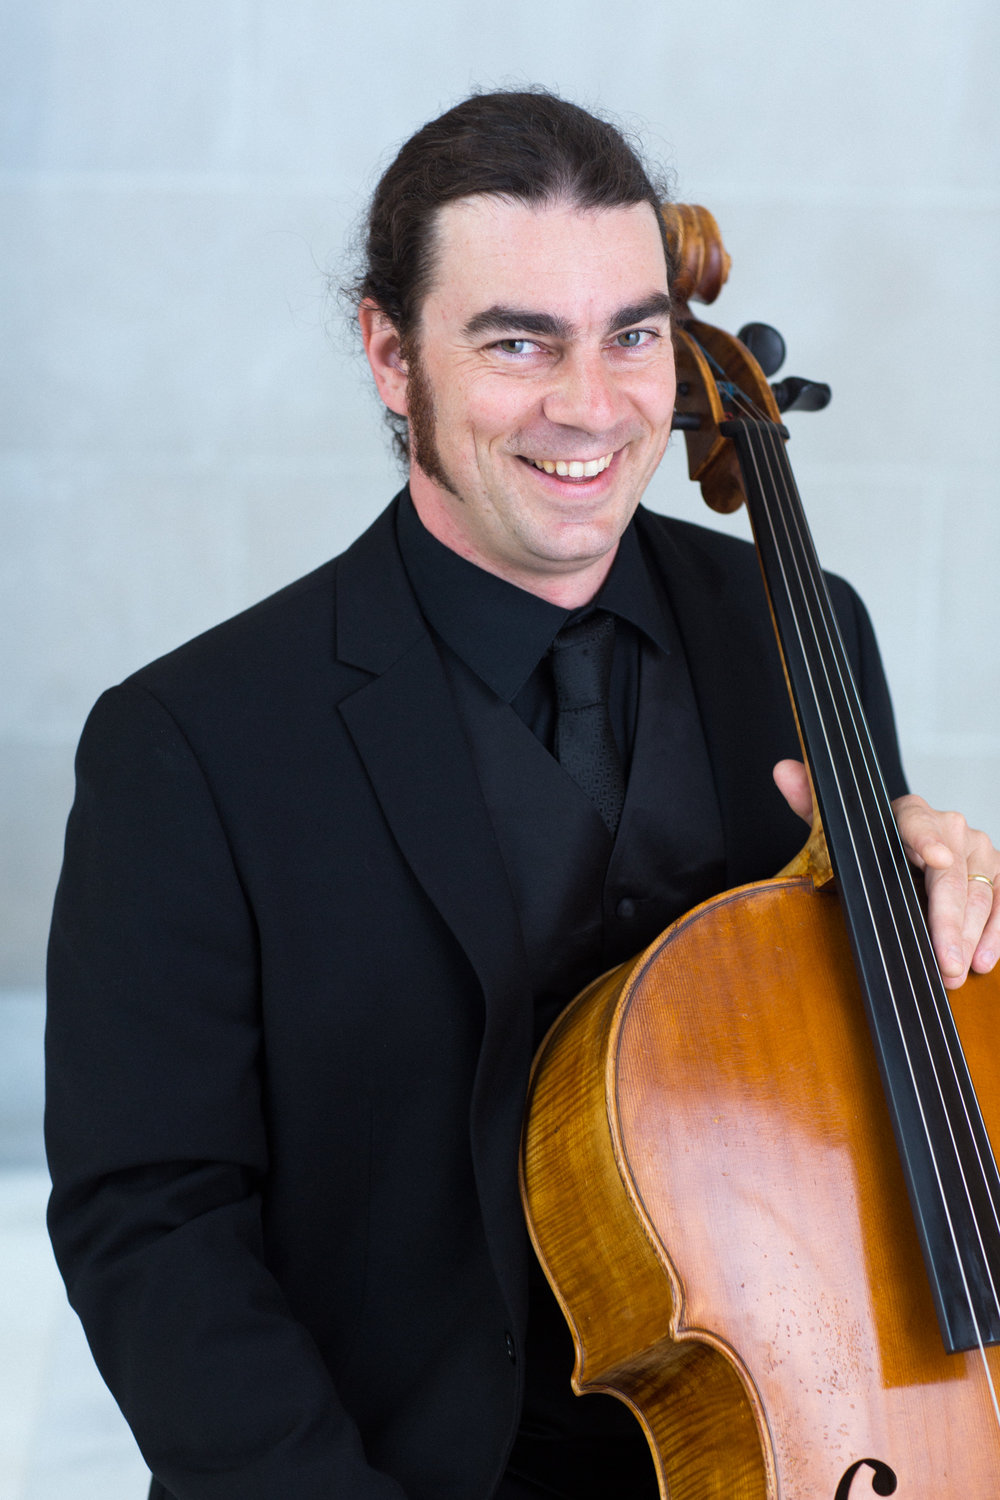 Shain Carrasco, cello